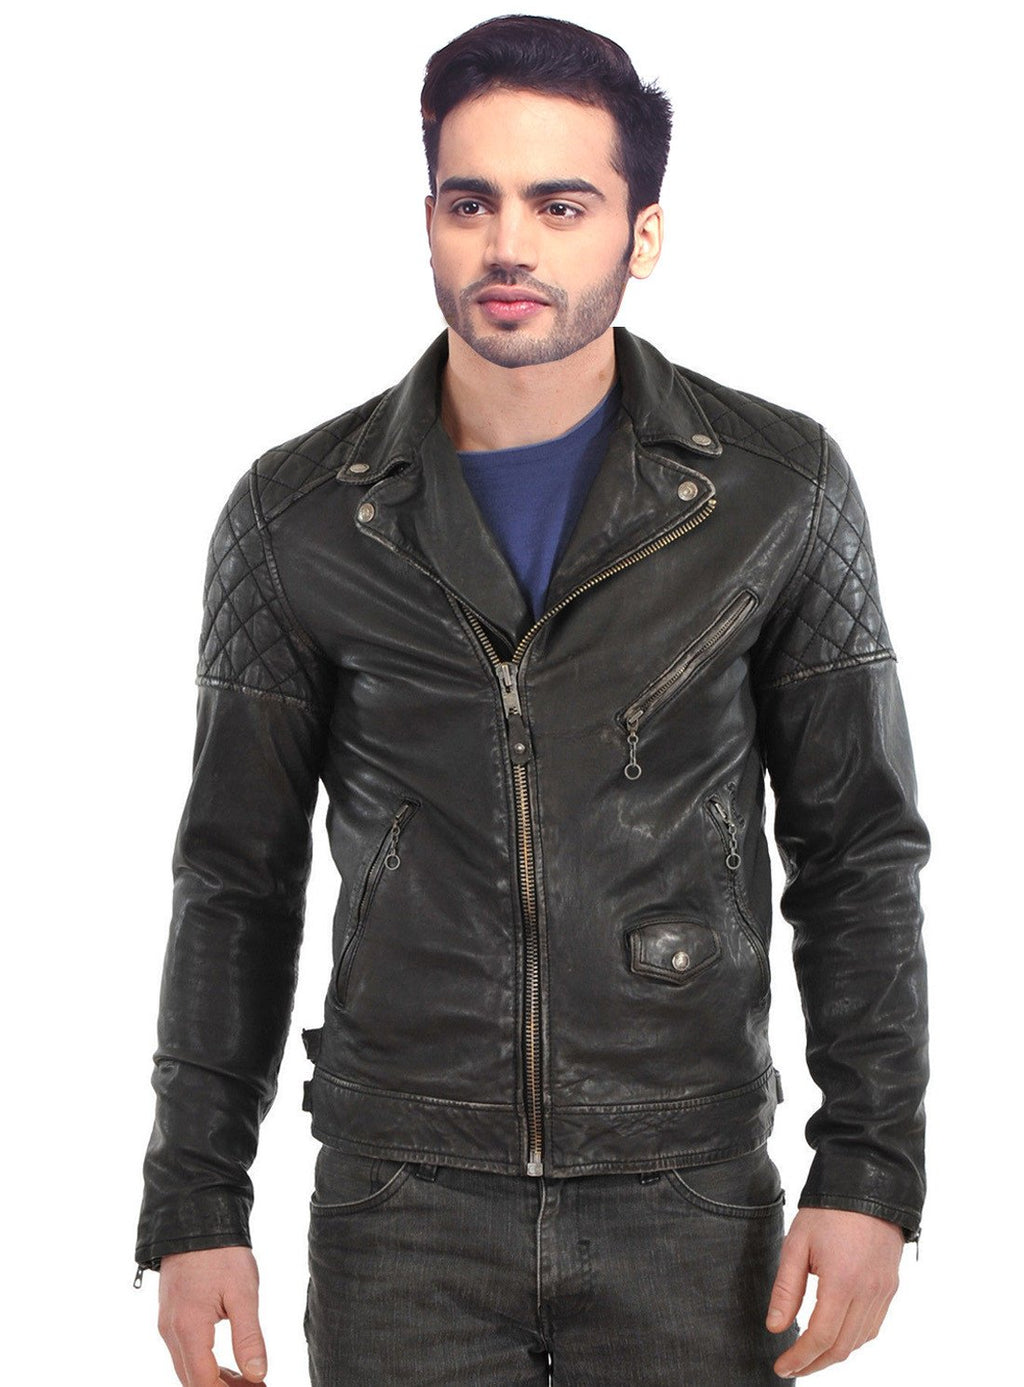 Men Washed Motorcycle Biker Leather Jacket with Diamond Padding at sleeves XS / LEATHER / Black, Men Jacket - CrabRocks, LeatherfashionOnline  - 1